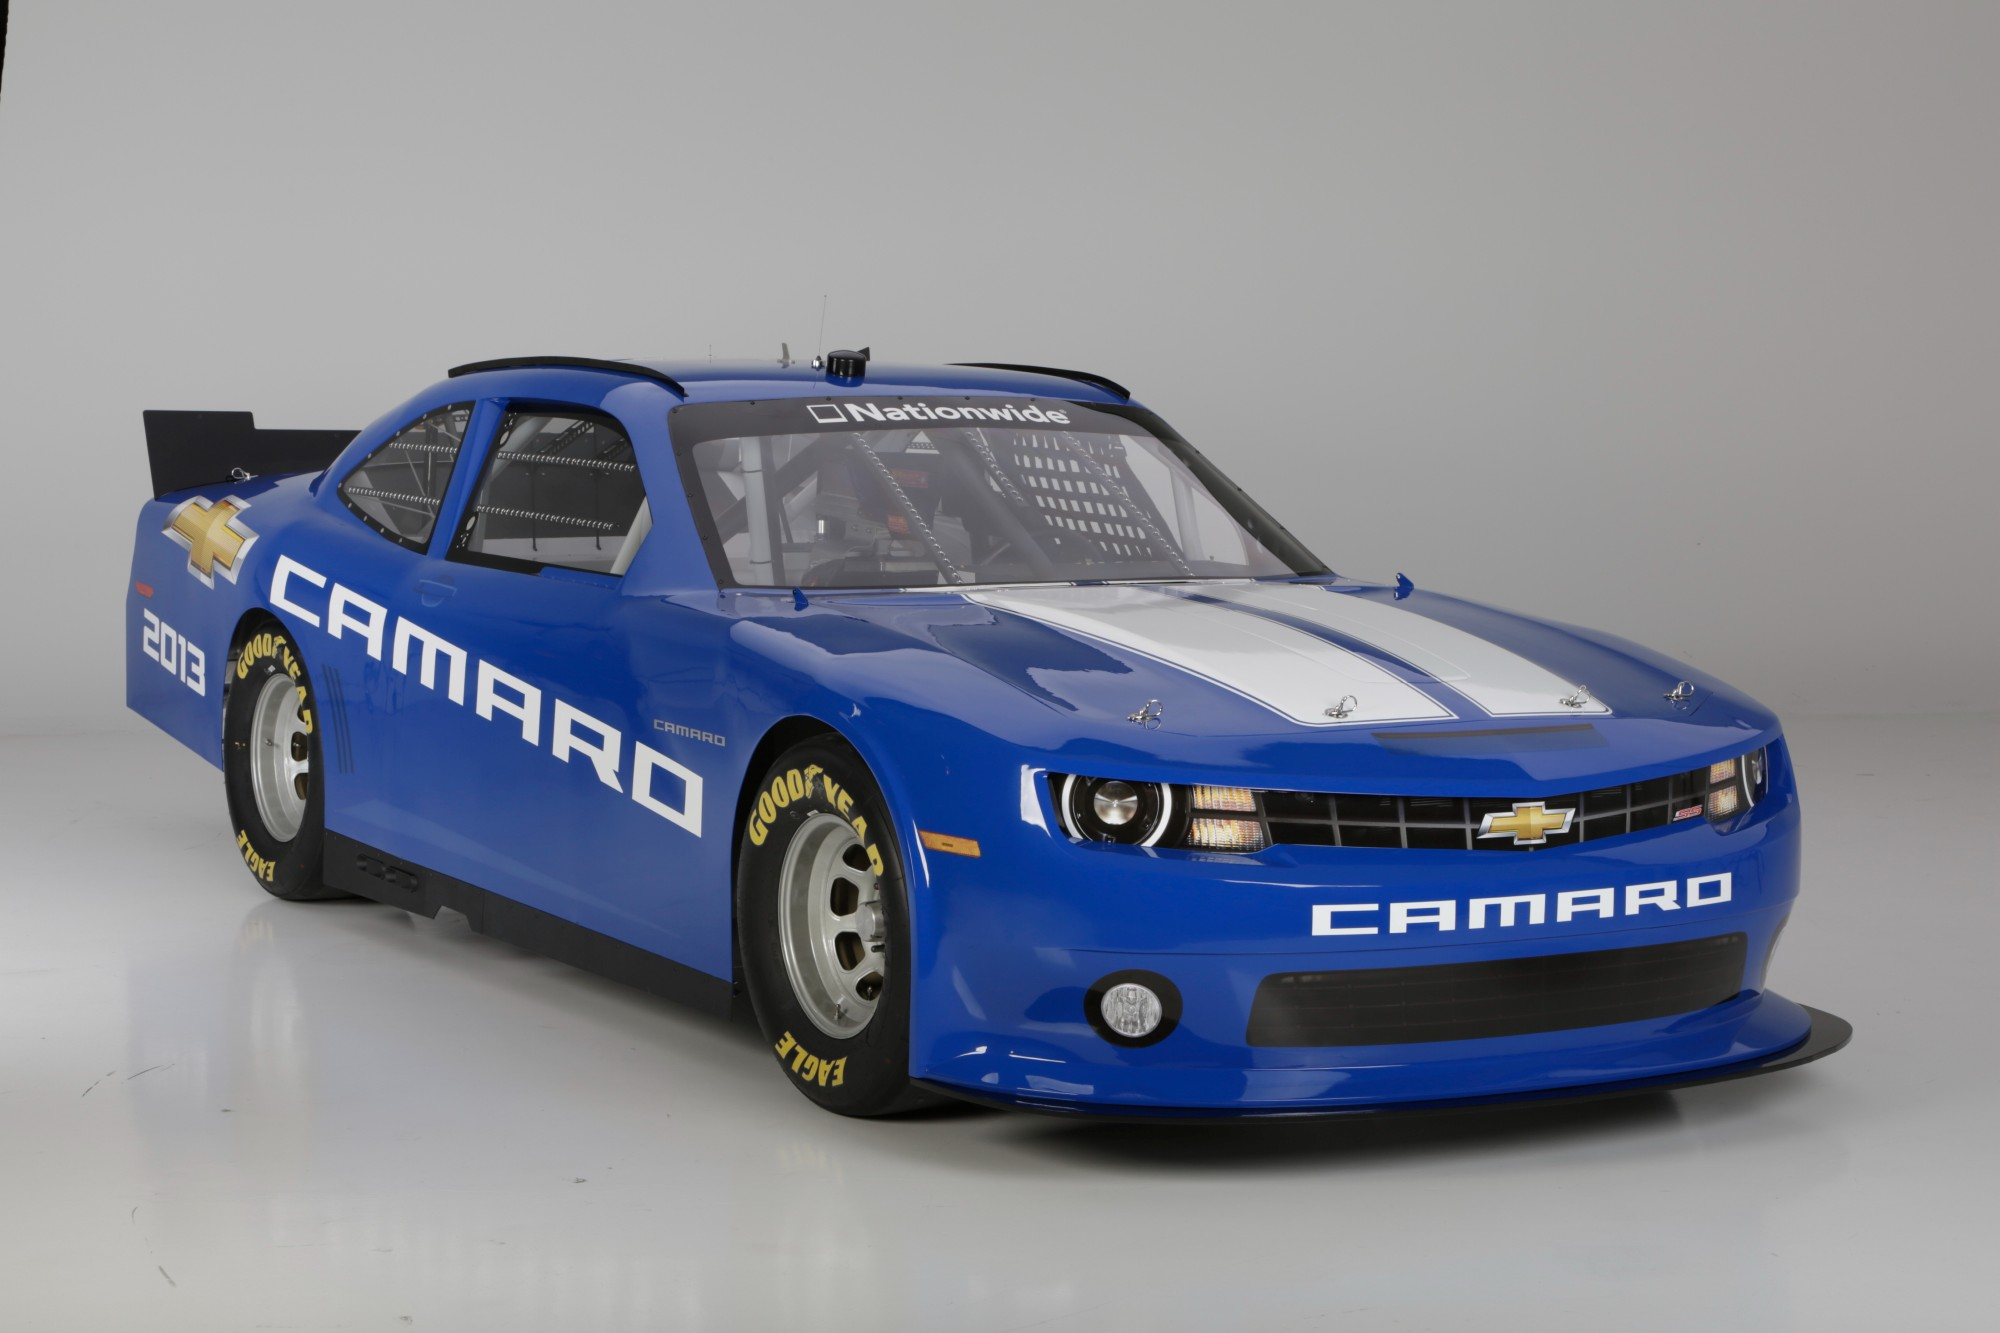 2013 Chevy Camaro NASCAR Nationwide Race Car Revealed